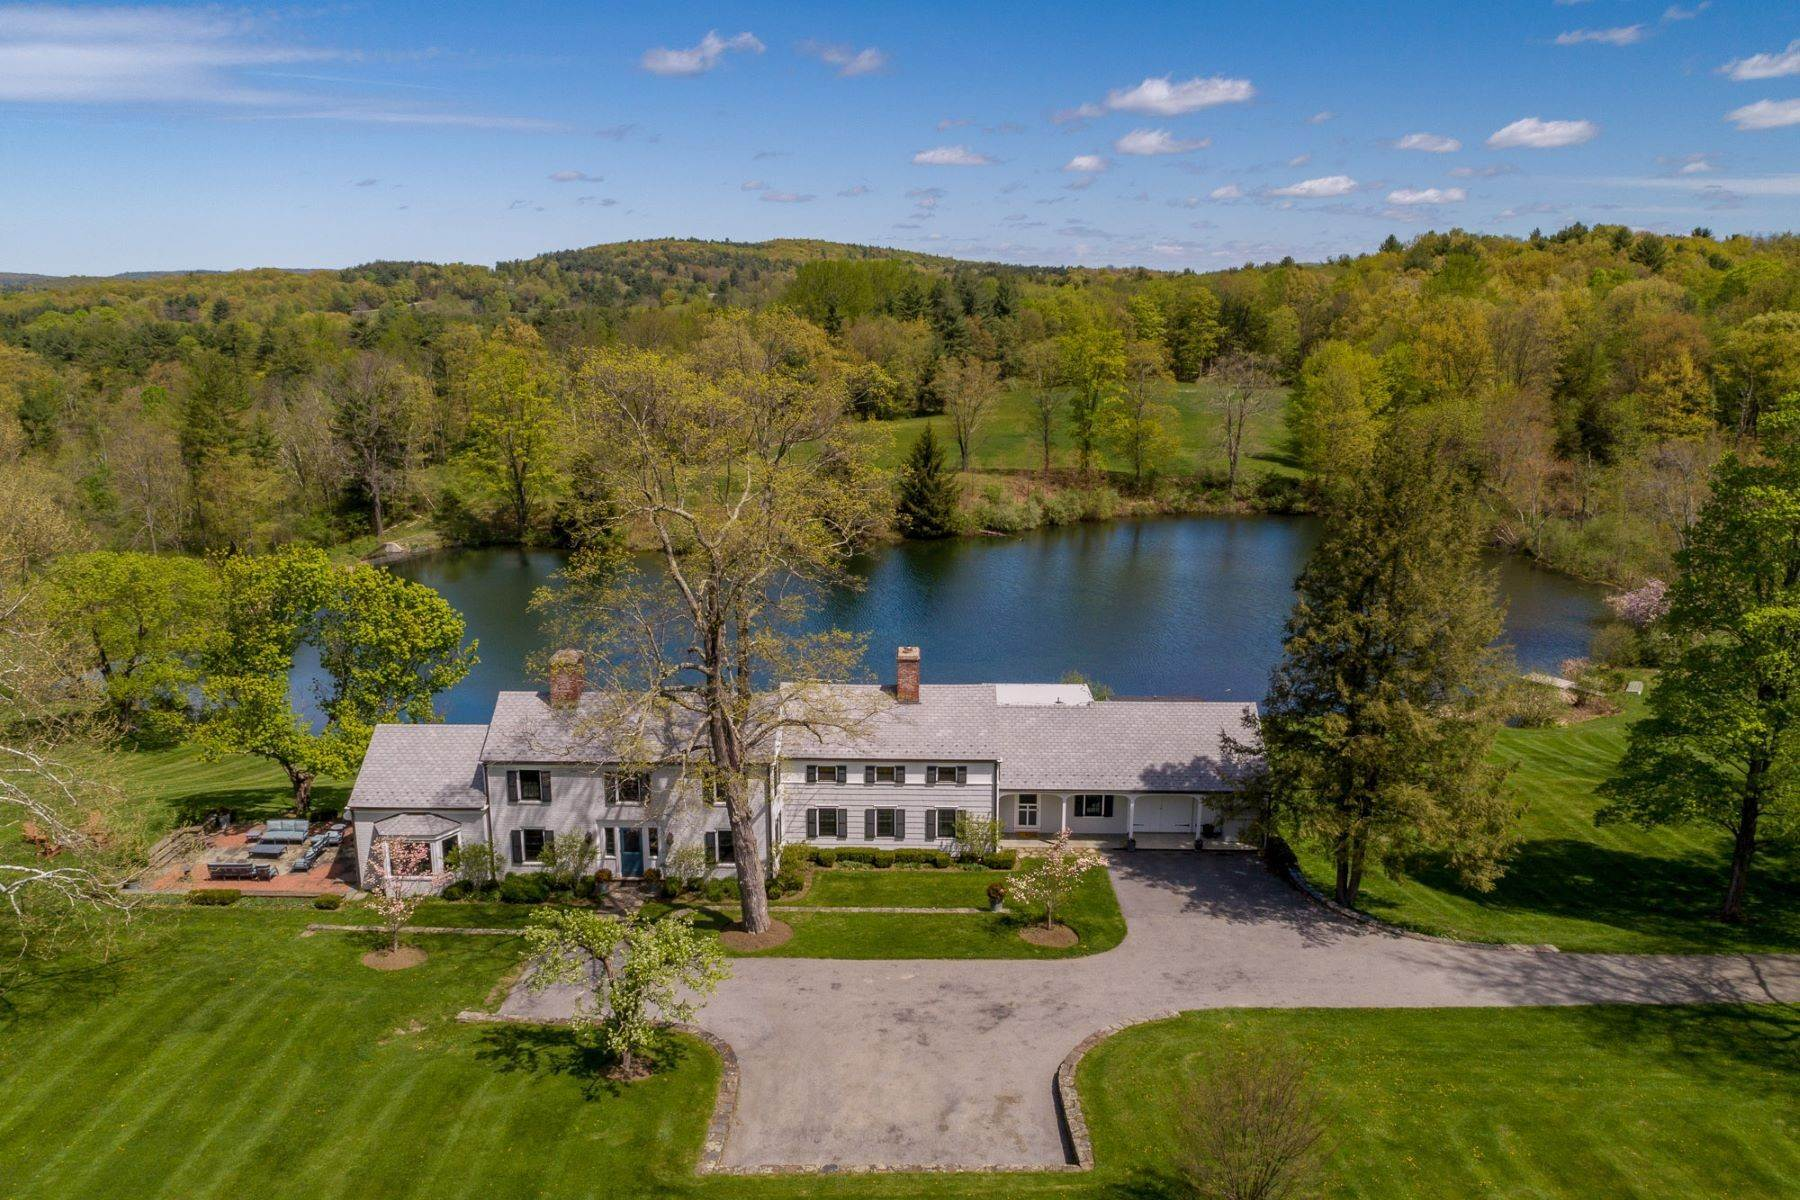 Single Family Homes for Sale at Arcadia Fields 749 Stanford Road Millbrook, New York 12545 United States